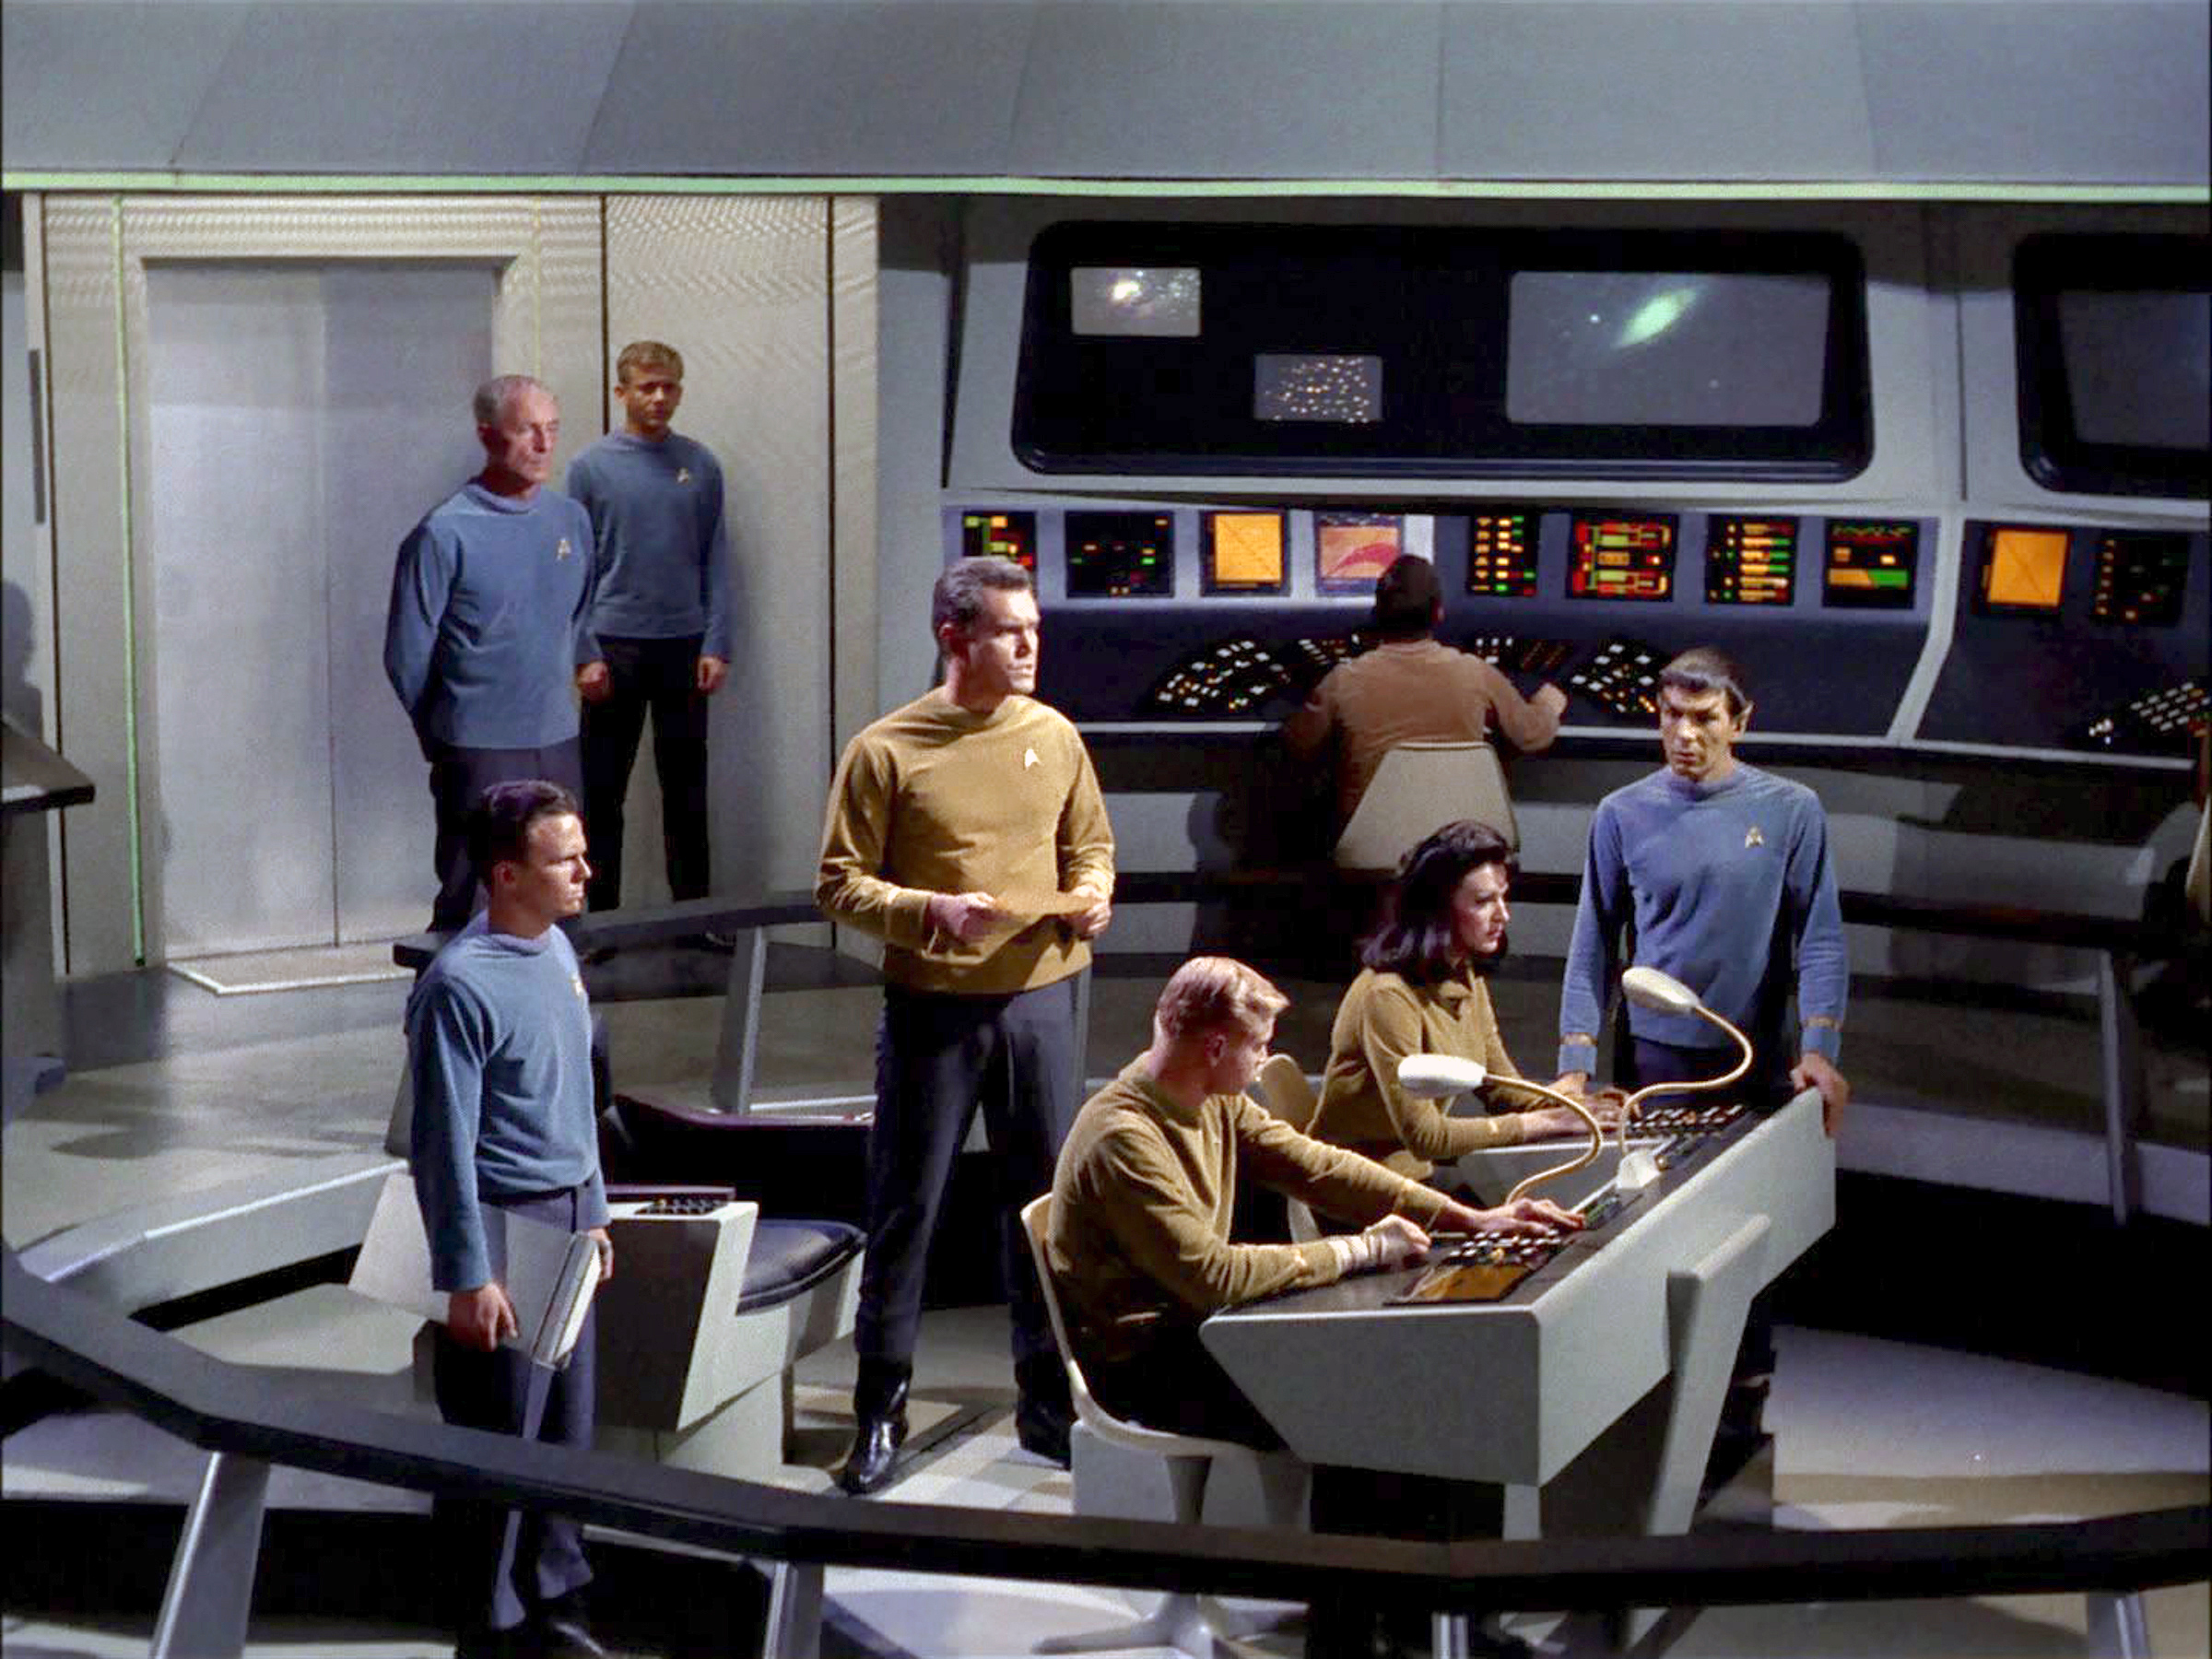 LOS ANGELES - DECEMBER 1: The crew on the bridge of the USS Enterprise.  John Hoyt as Dr. Phillip Boyce standing in back with hands behind his back, Jeffrey Hunter as Captain Christopher Pike, center holding paper, Peter Duryea as Lieutenant Jos? Tyler, seated left, Majel Barrett as Number One (M. Leigh Hudec)seated right and Leonard Nimoy as Commander Spock (Mr. Spock) standing left. in the STAR TREK: The Original Series episode,  The Cage.  This is the pilot episode completed early 1965, but not broadcast until October 4, 1988.   Image is a screen grab. (Photo by CBS via Getty Images)